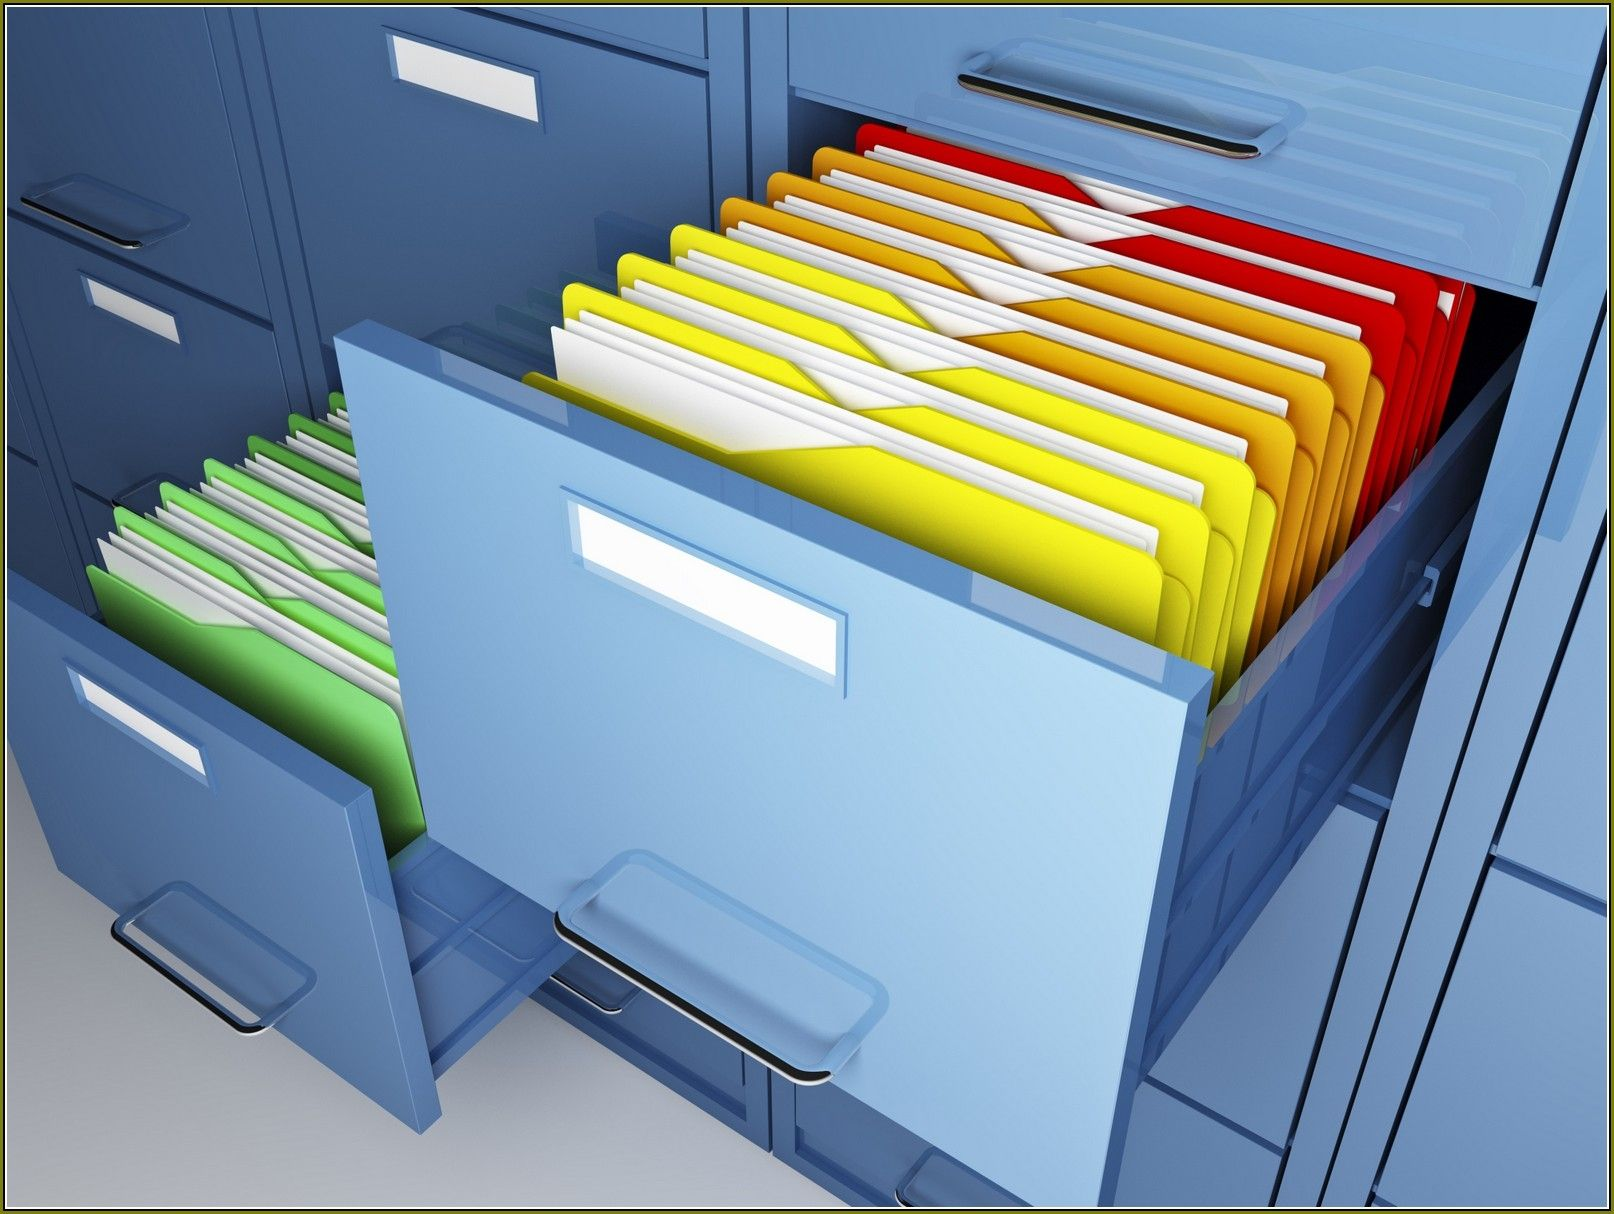 Hanging File Cabinet Dividers | http://advice-tips.com | Pinterest ...